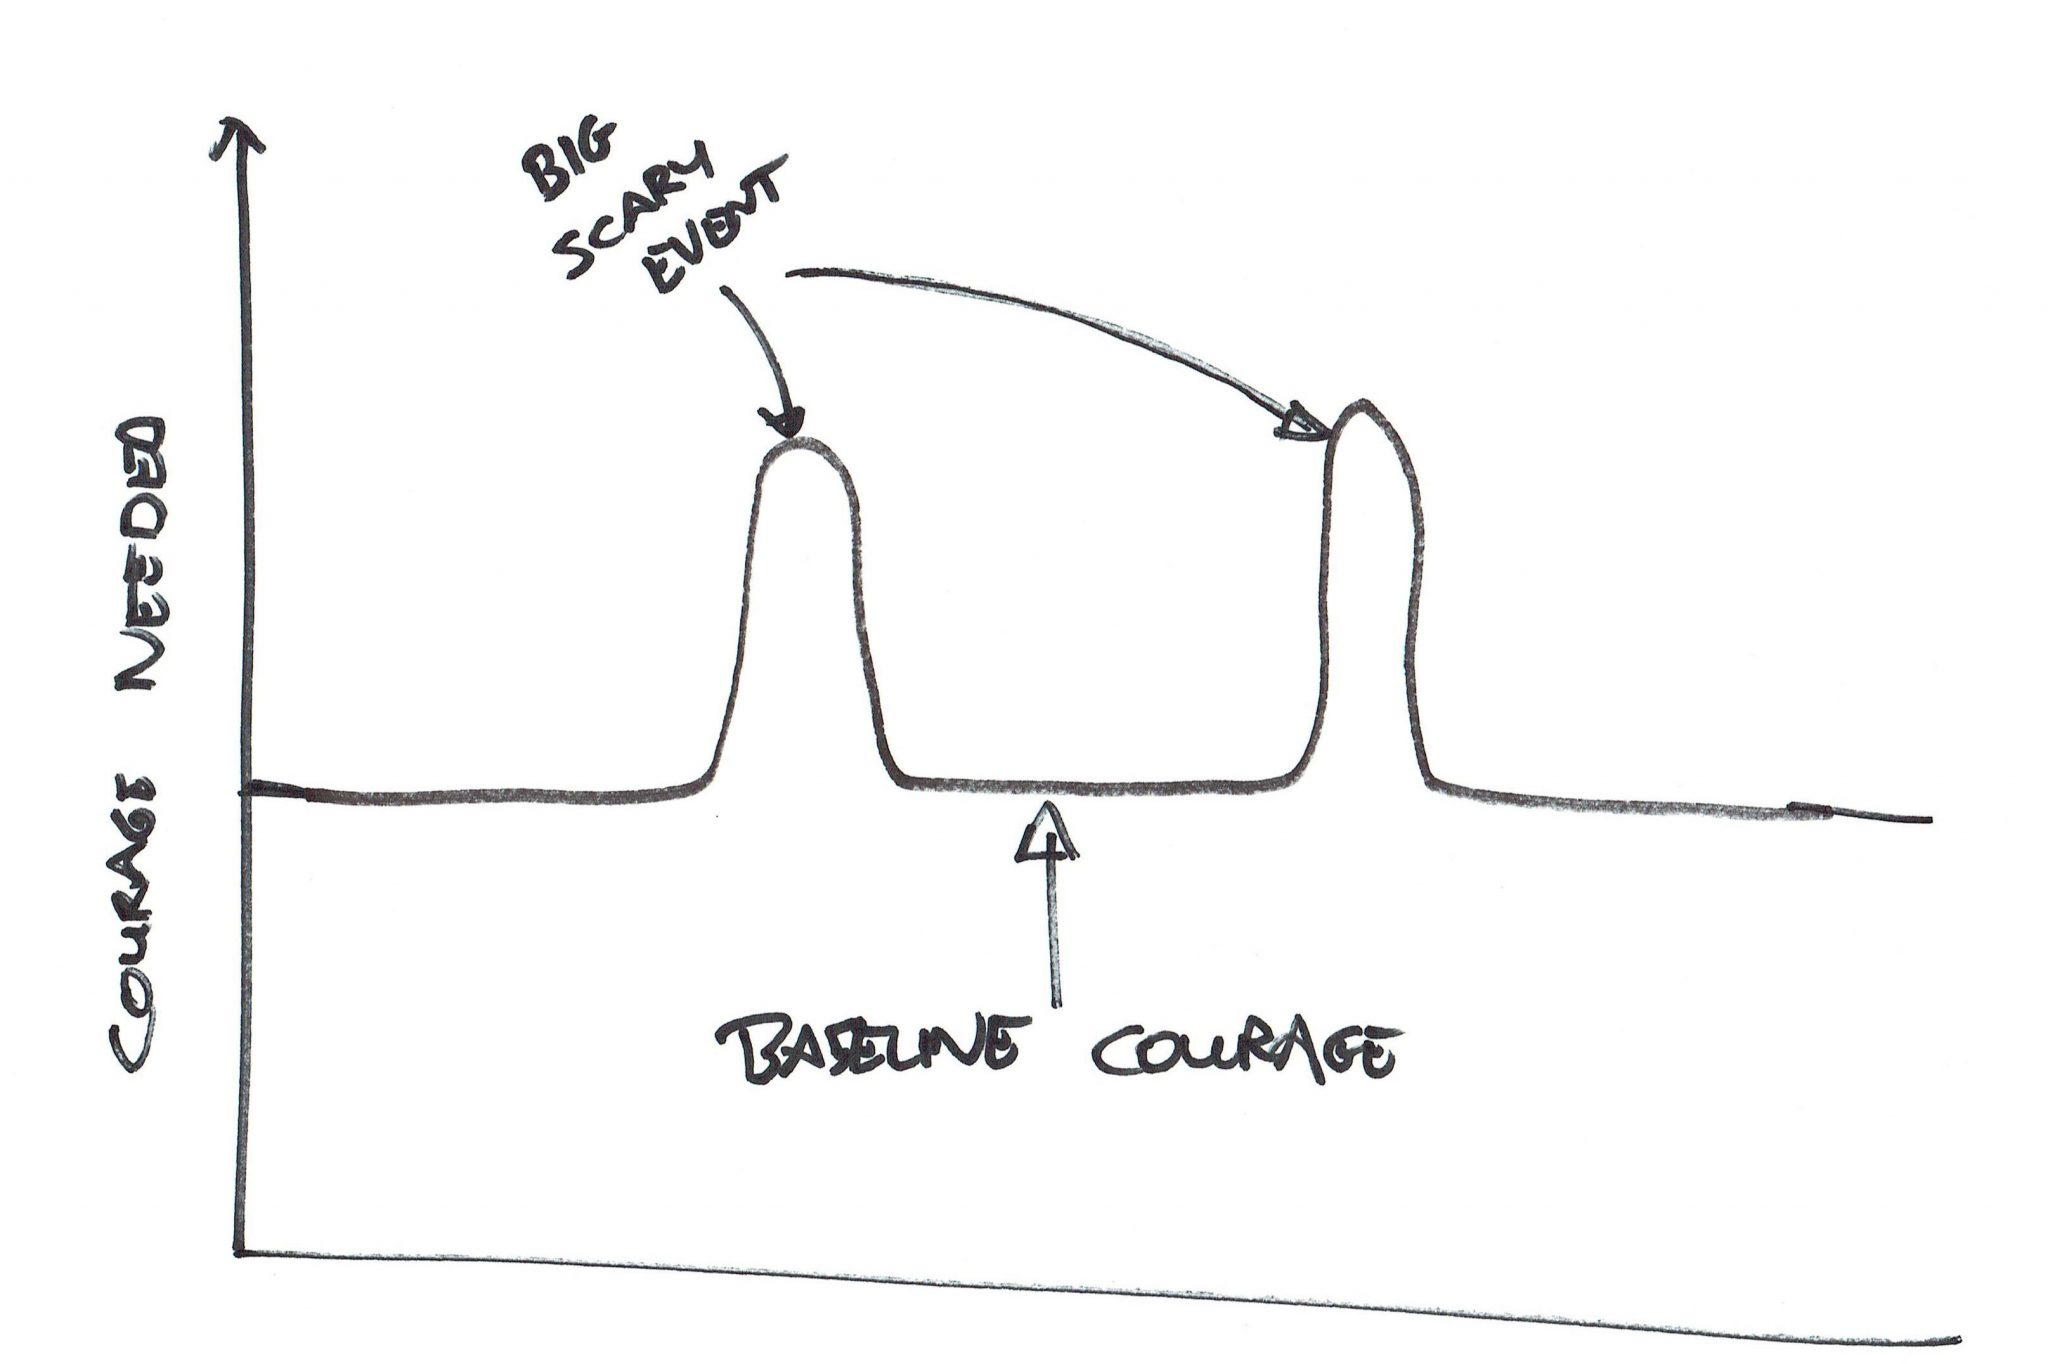 Baseline Courage Graph 1